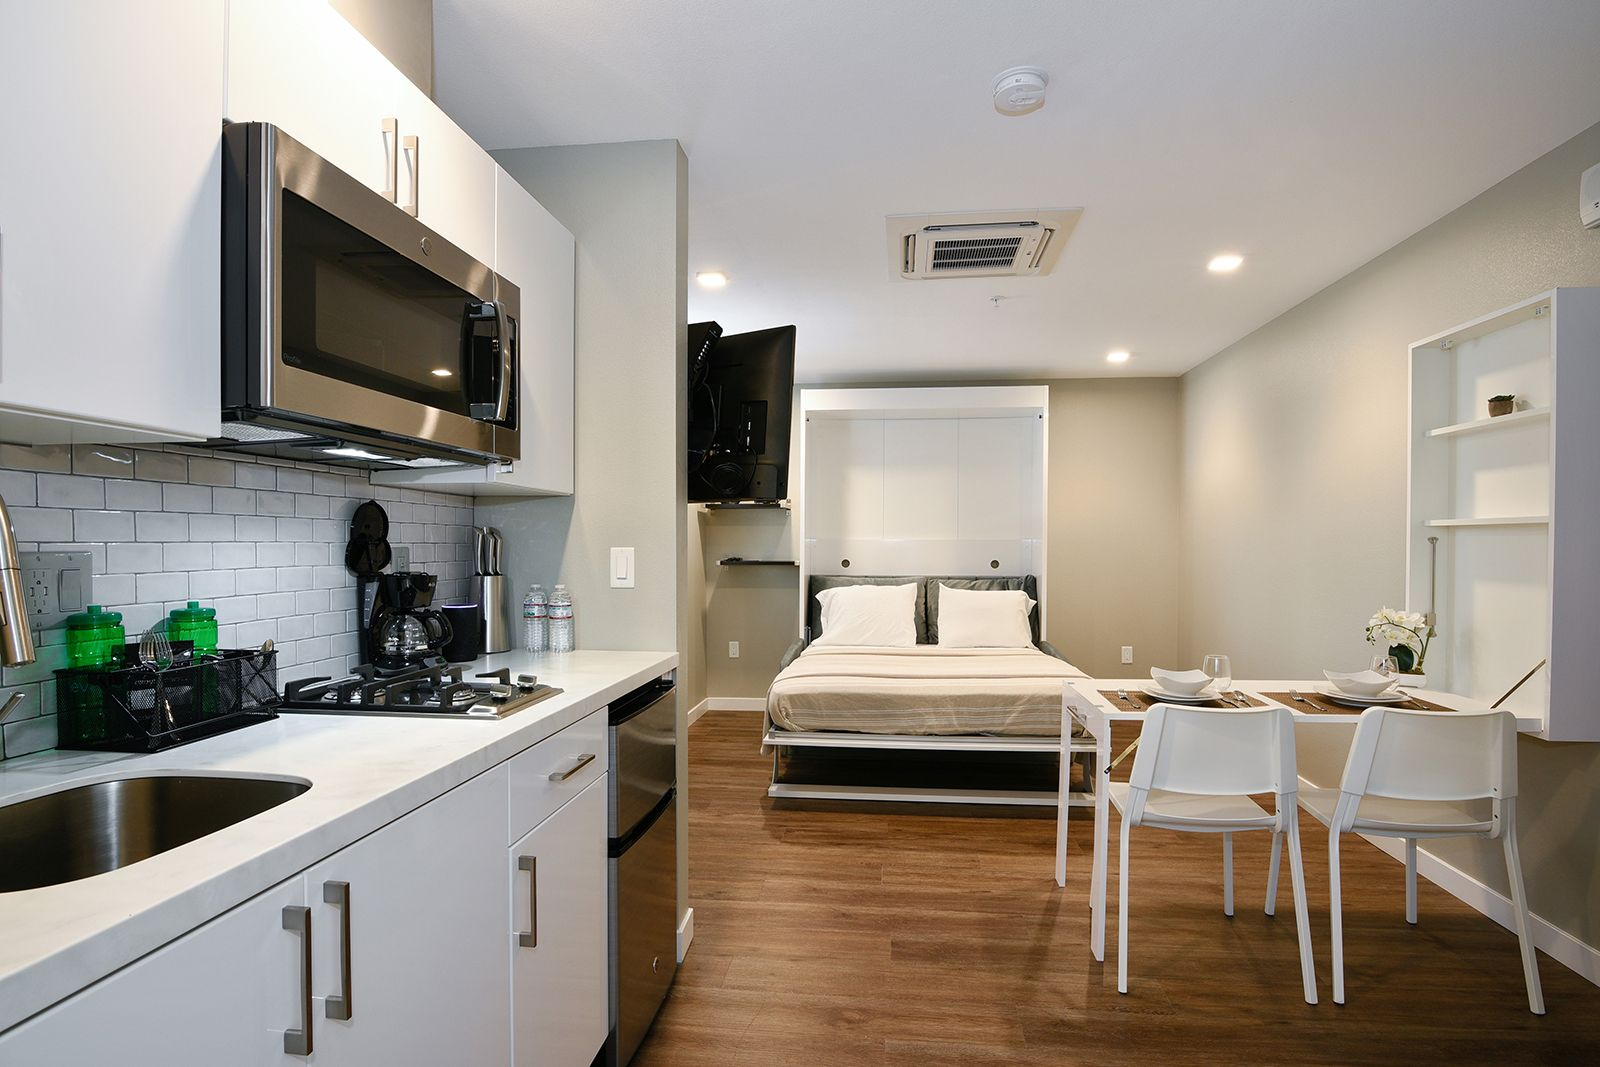 Our Fully Furnished Studio Apartment Homes Feature Renovated Interiors With High End Appliance And Furni Apartments For Rent Chair Design Furniture Arrangement